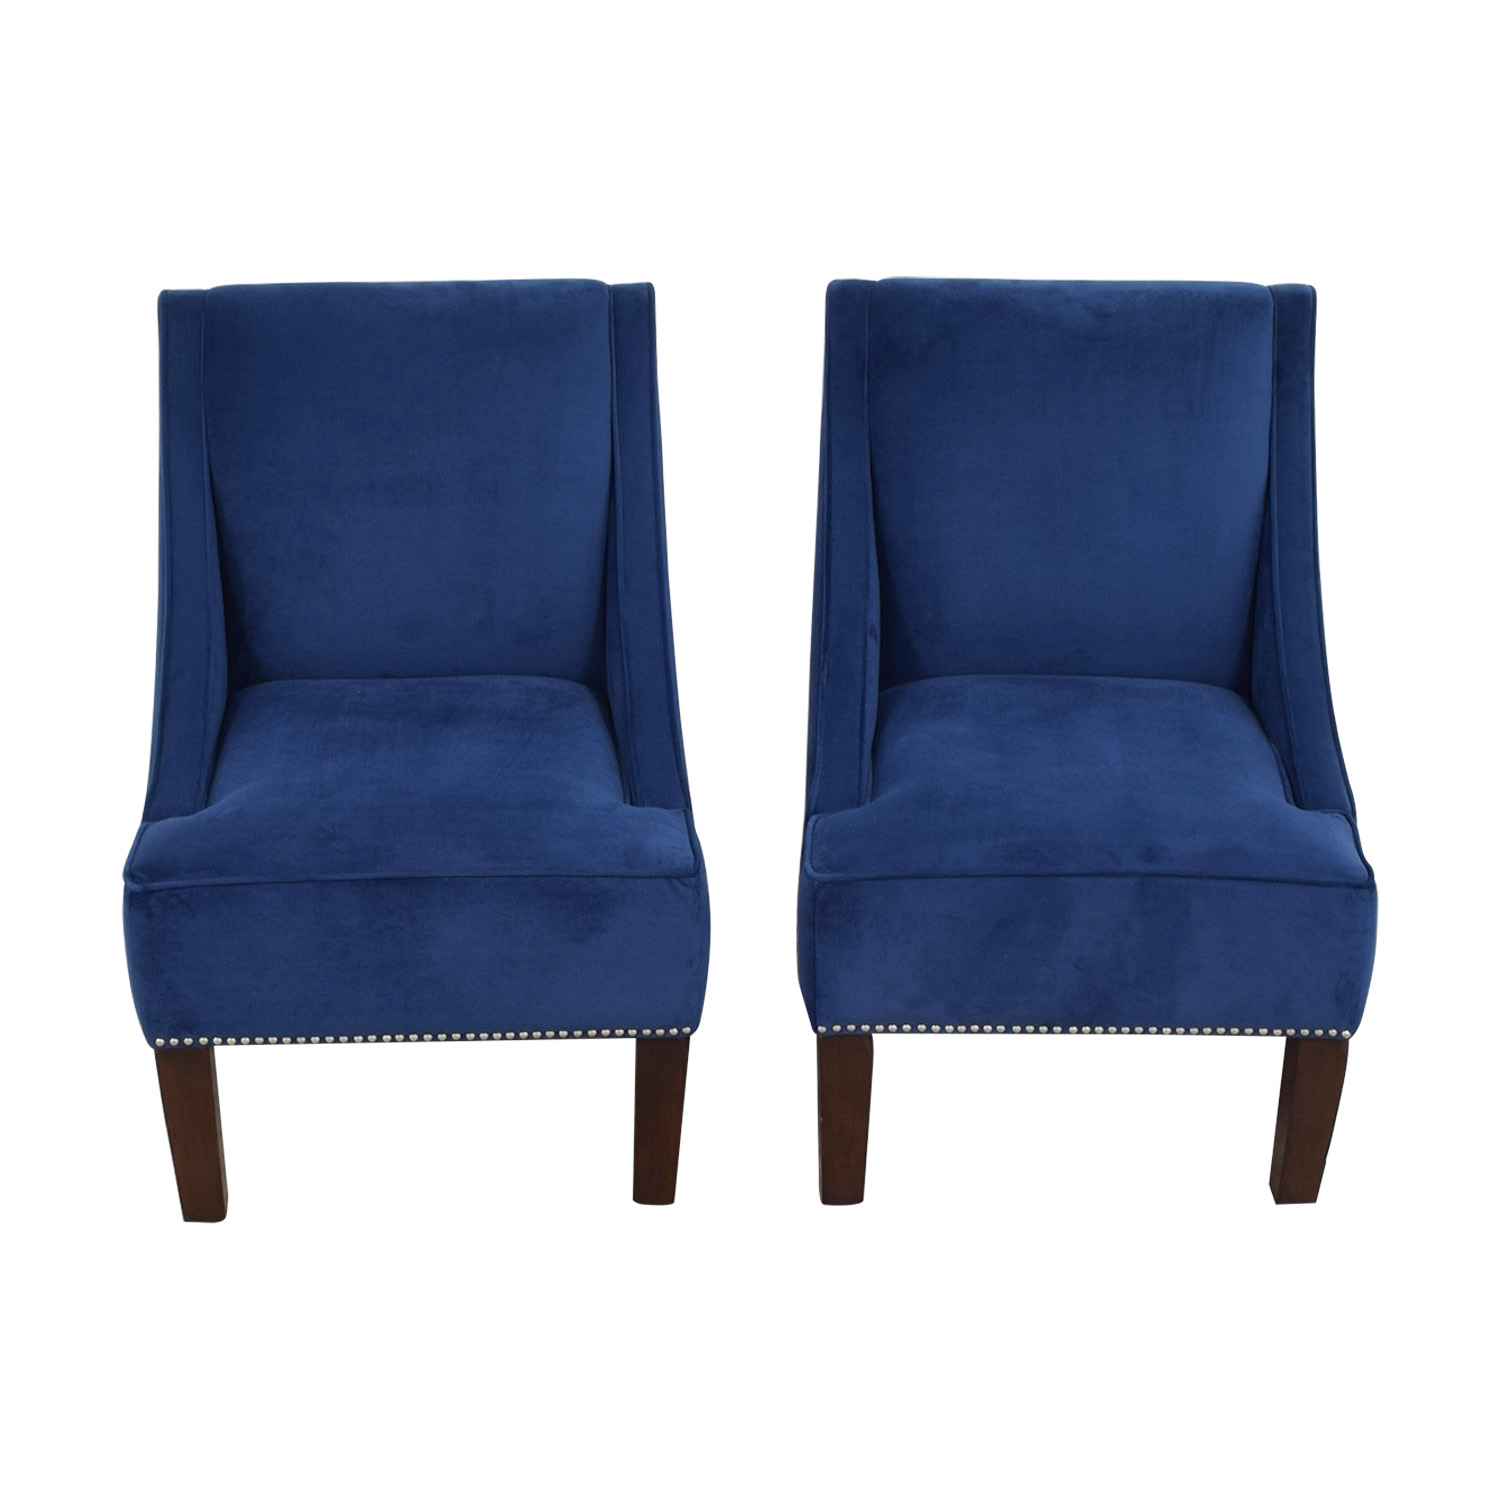 Navy Accent Chair 67 Off Liza Liza Navy Velvet Nailhead Winged Accent